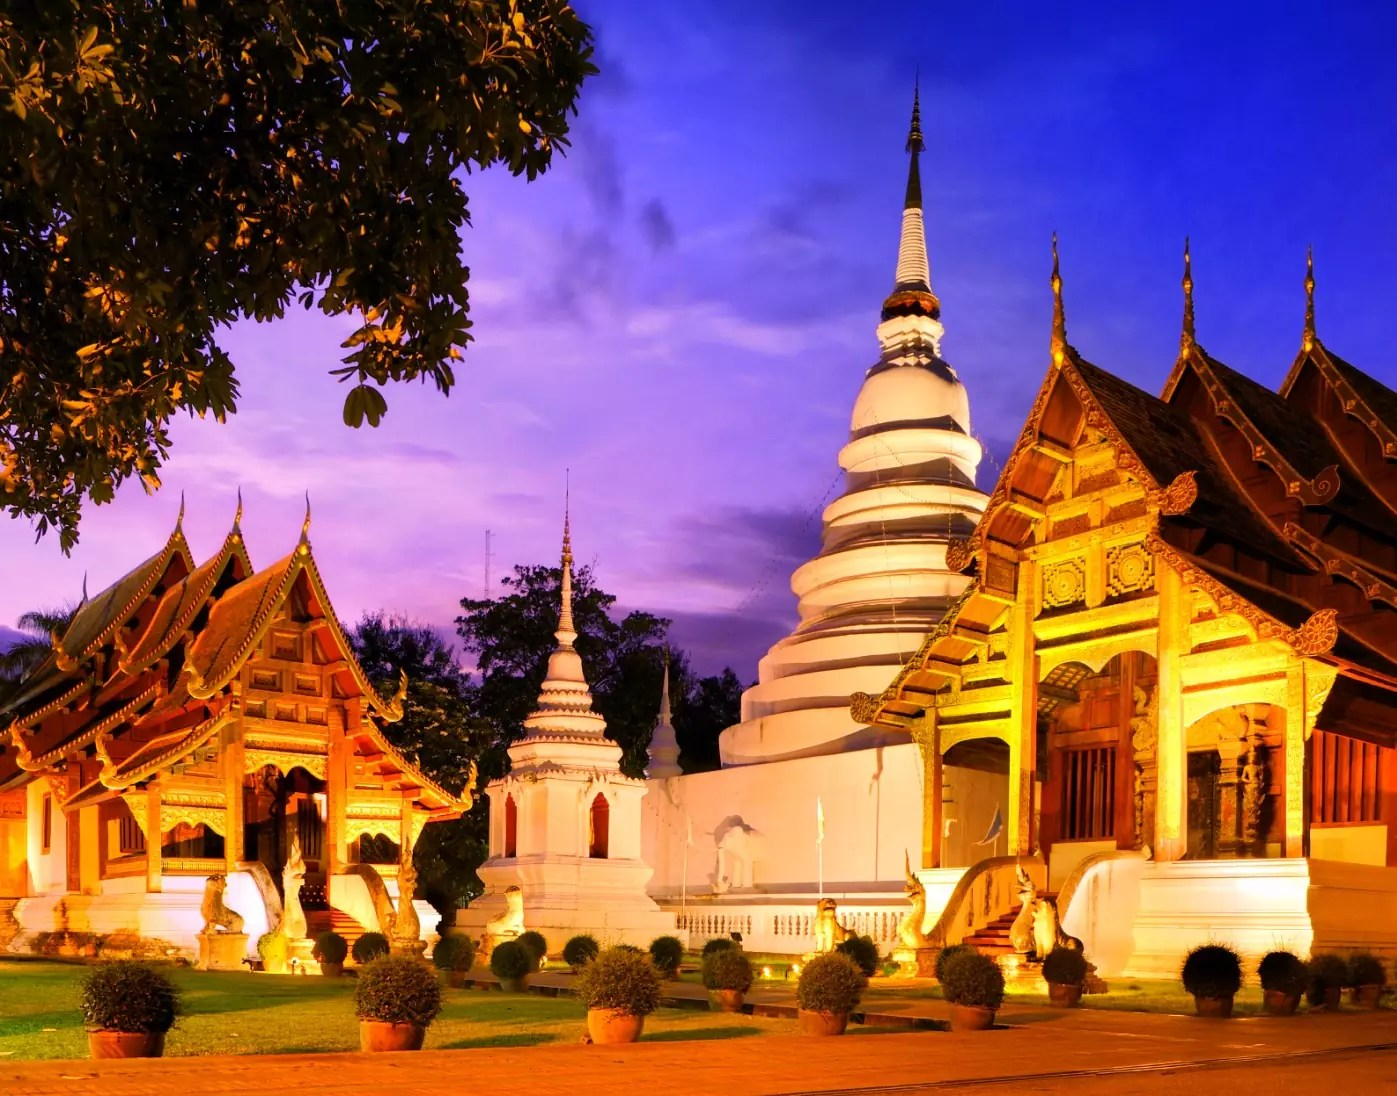 Chiang Mai Travel Blog - This is a copyright free photo